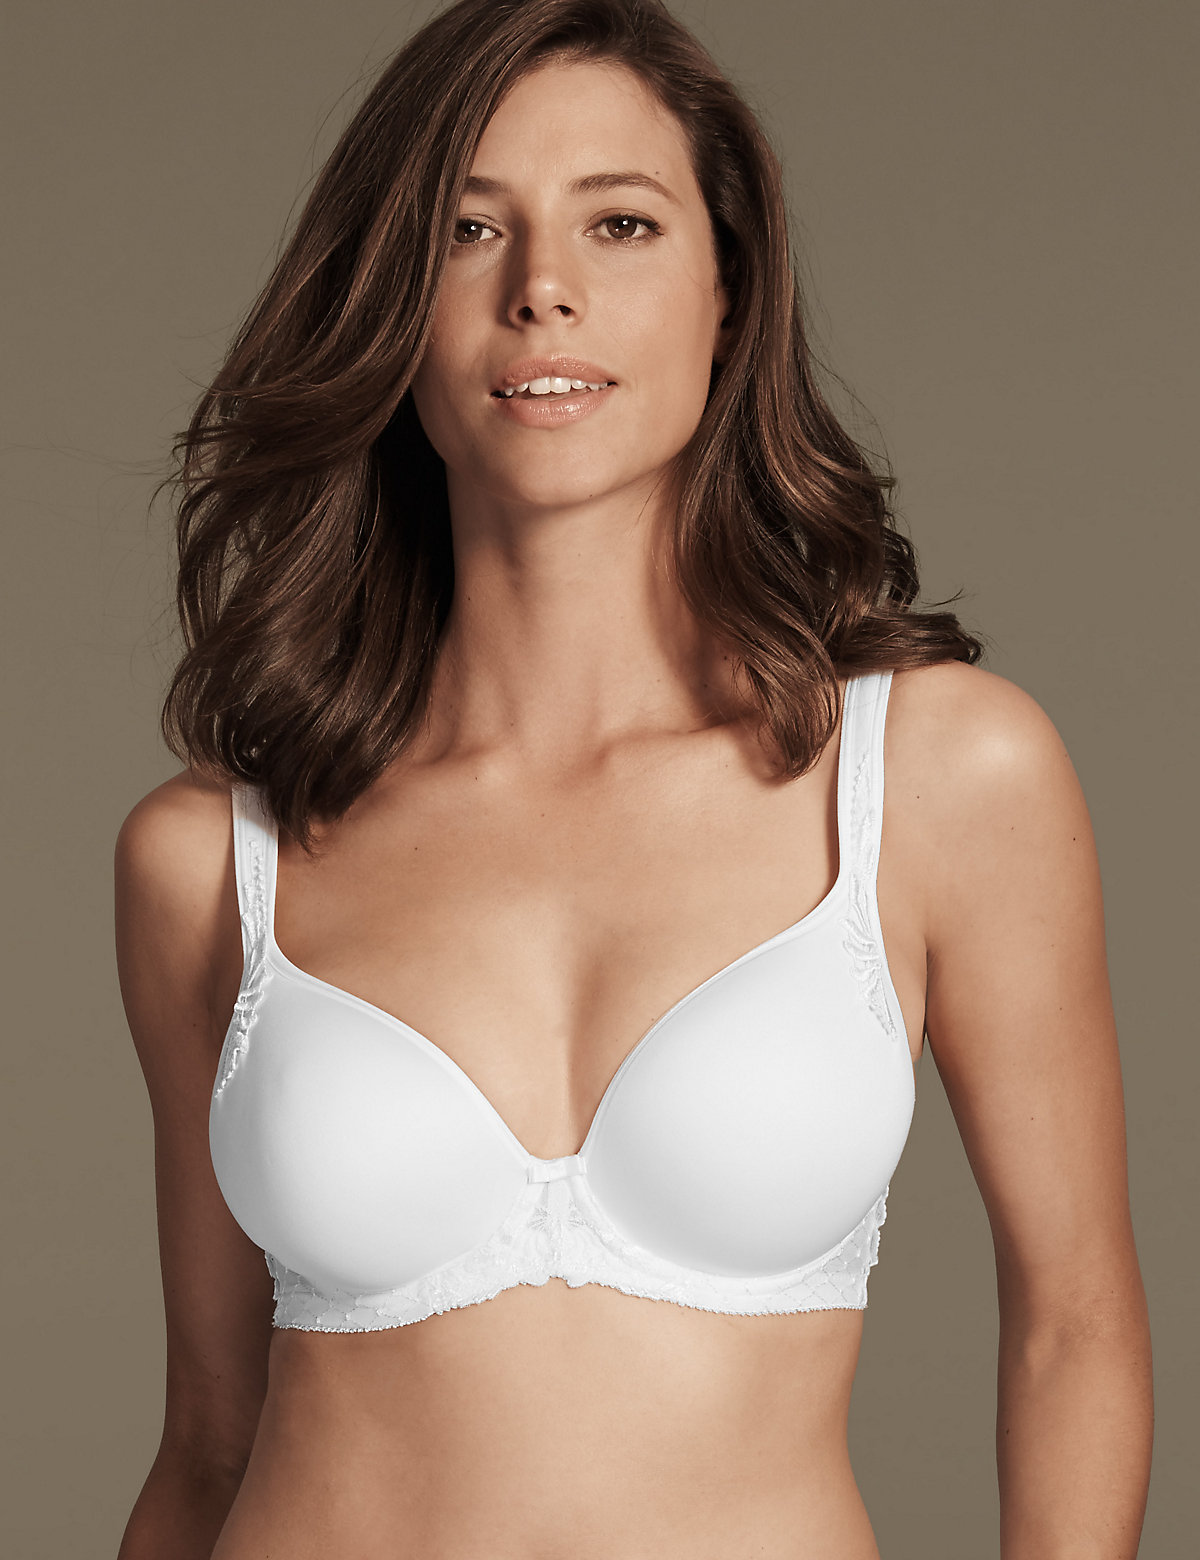 Adored Ophelia Embroidered Spacer Balcony Bra DD-GG with Cool Comfort Technology